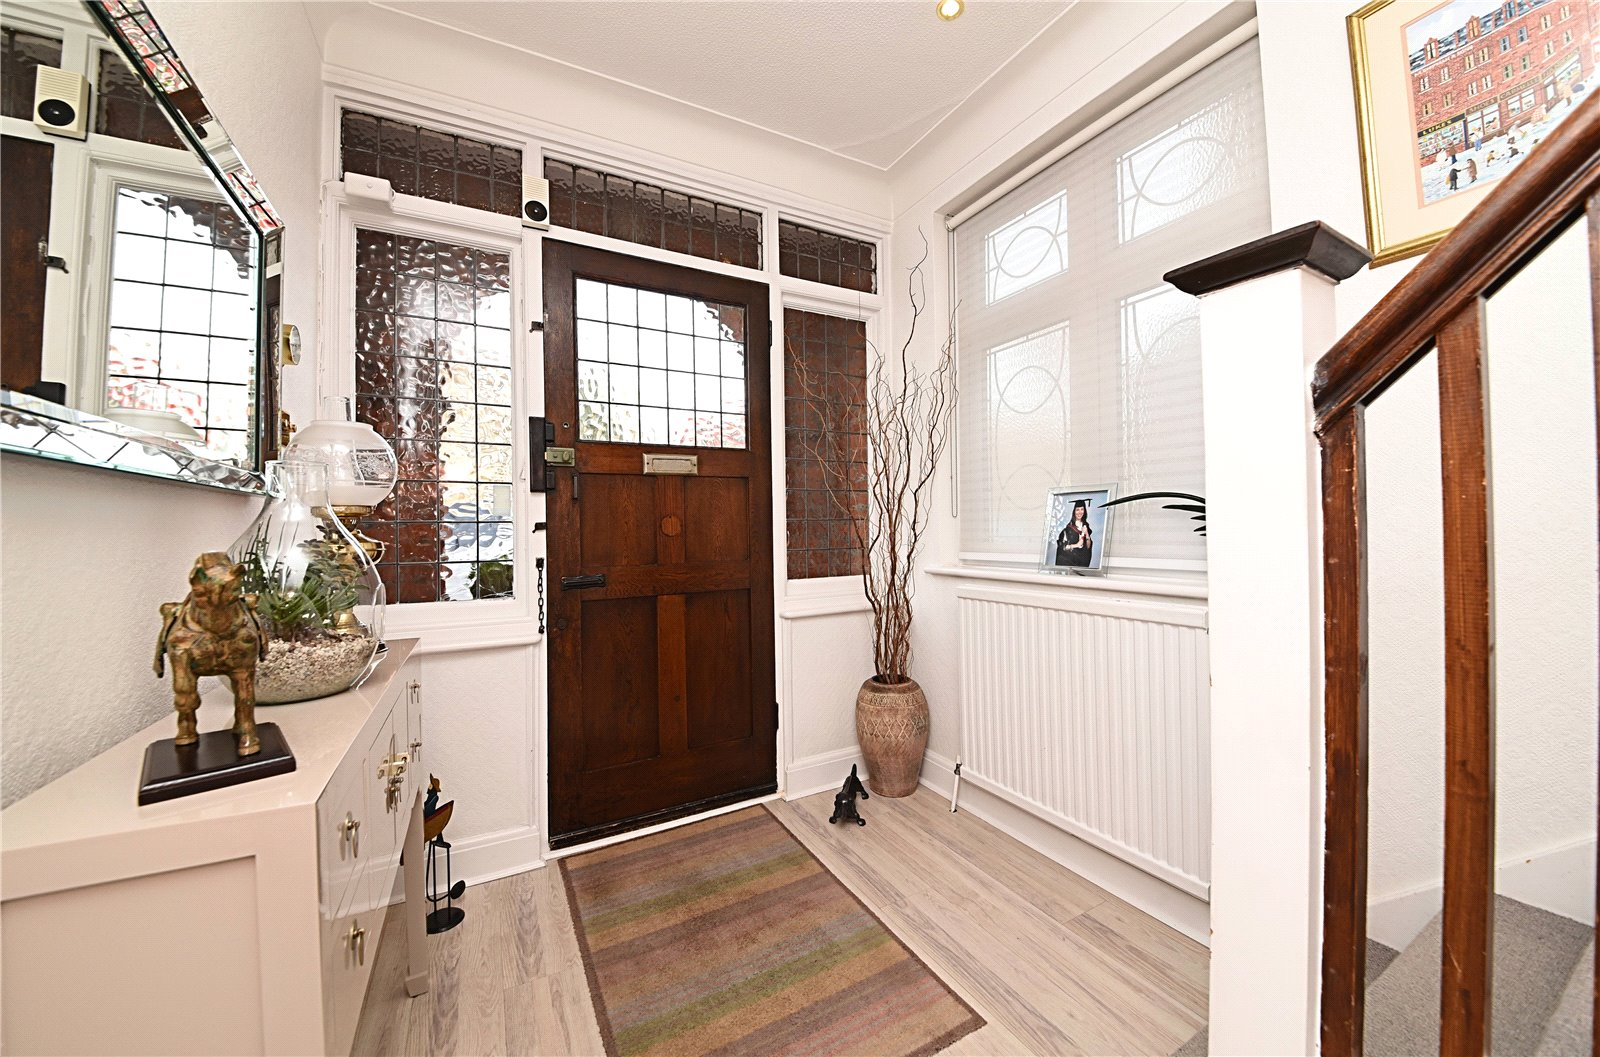 4 bed house for sale in Hendon, NW4 1LJ 1